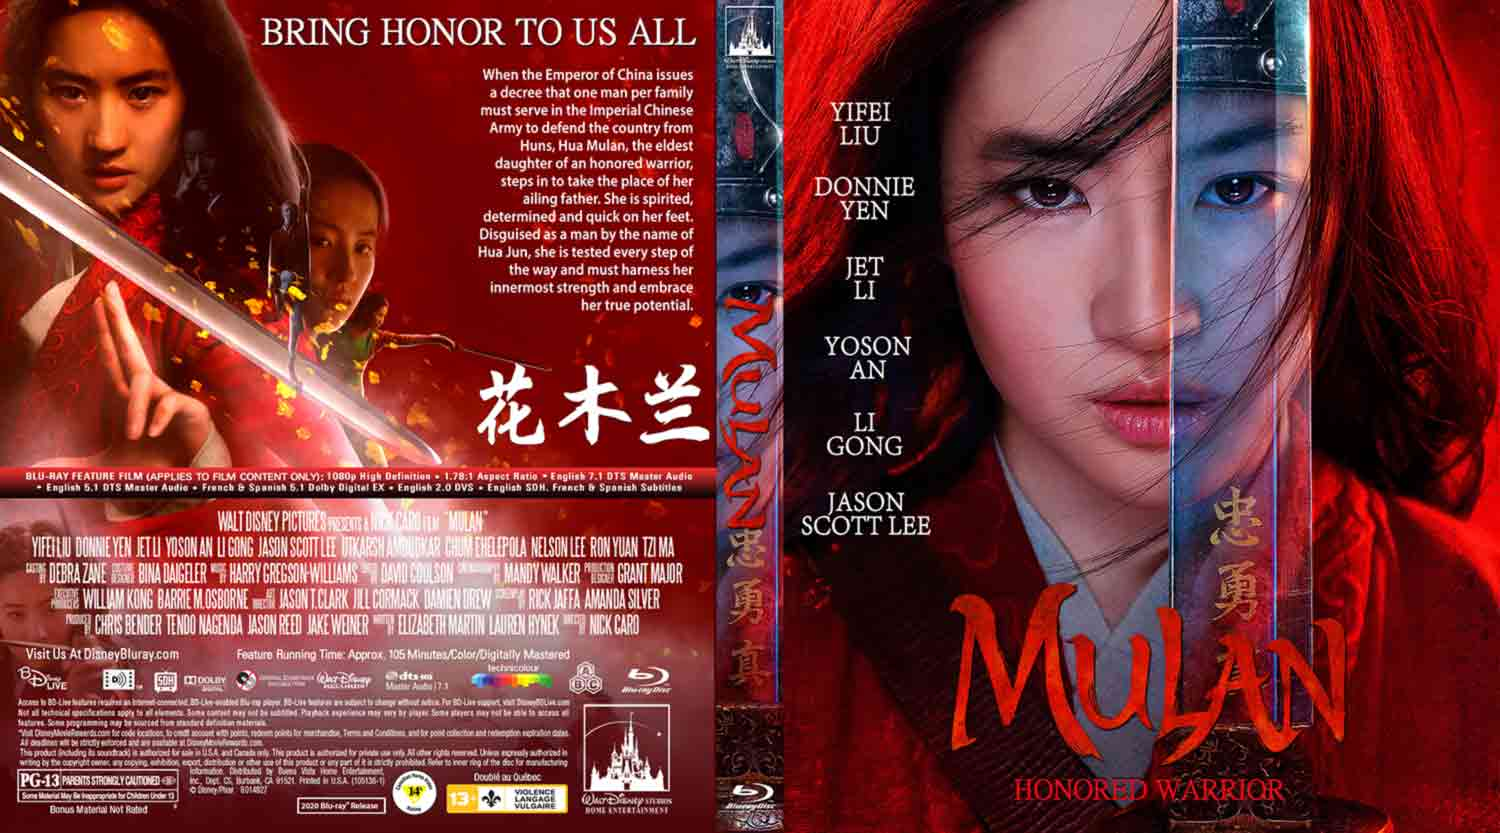 Mulan 2020 Bluray Cover Cover Addict Free Dvd Bluray Covers And Movie Posters